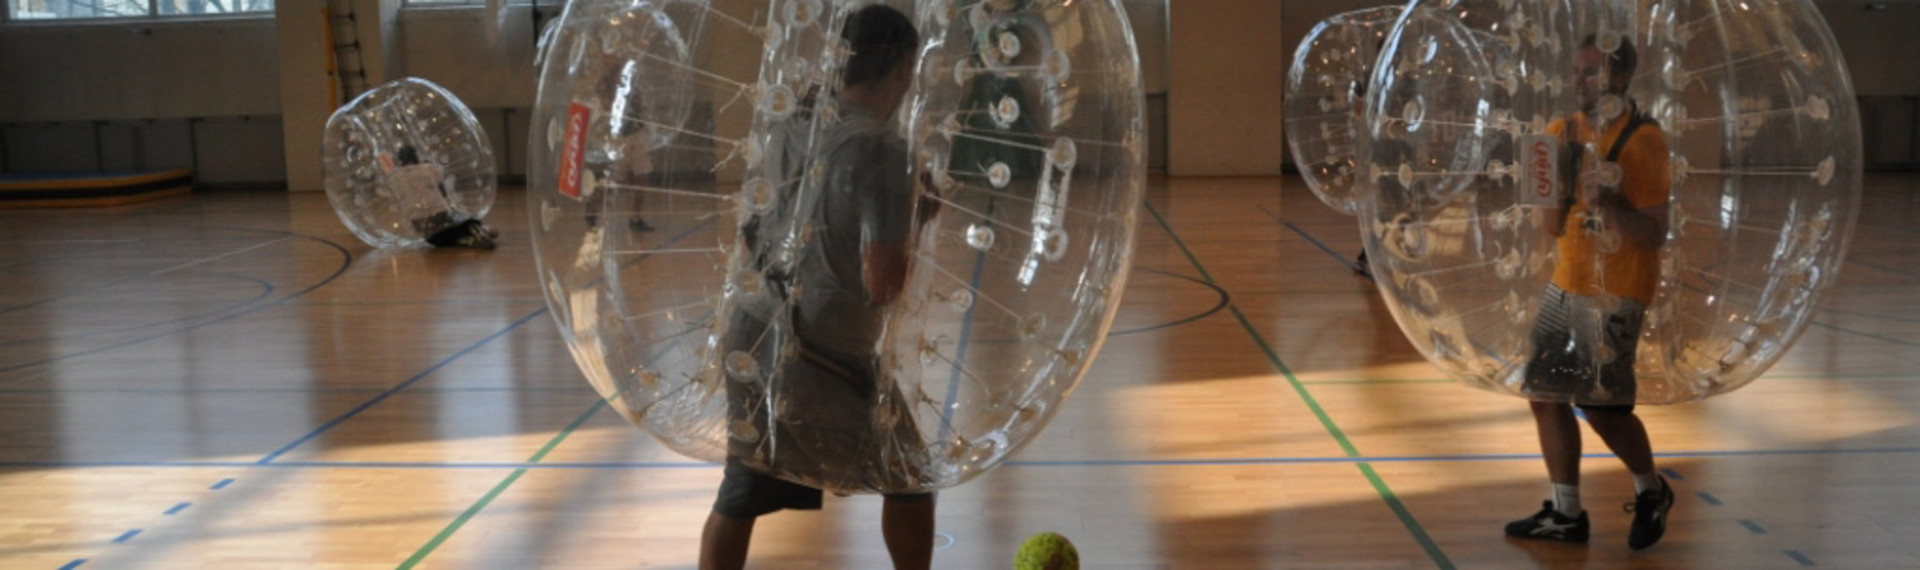 Gdansk Bubble Football image